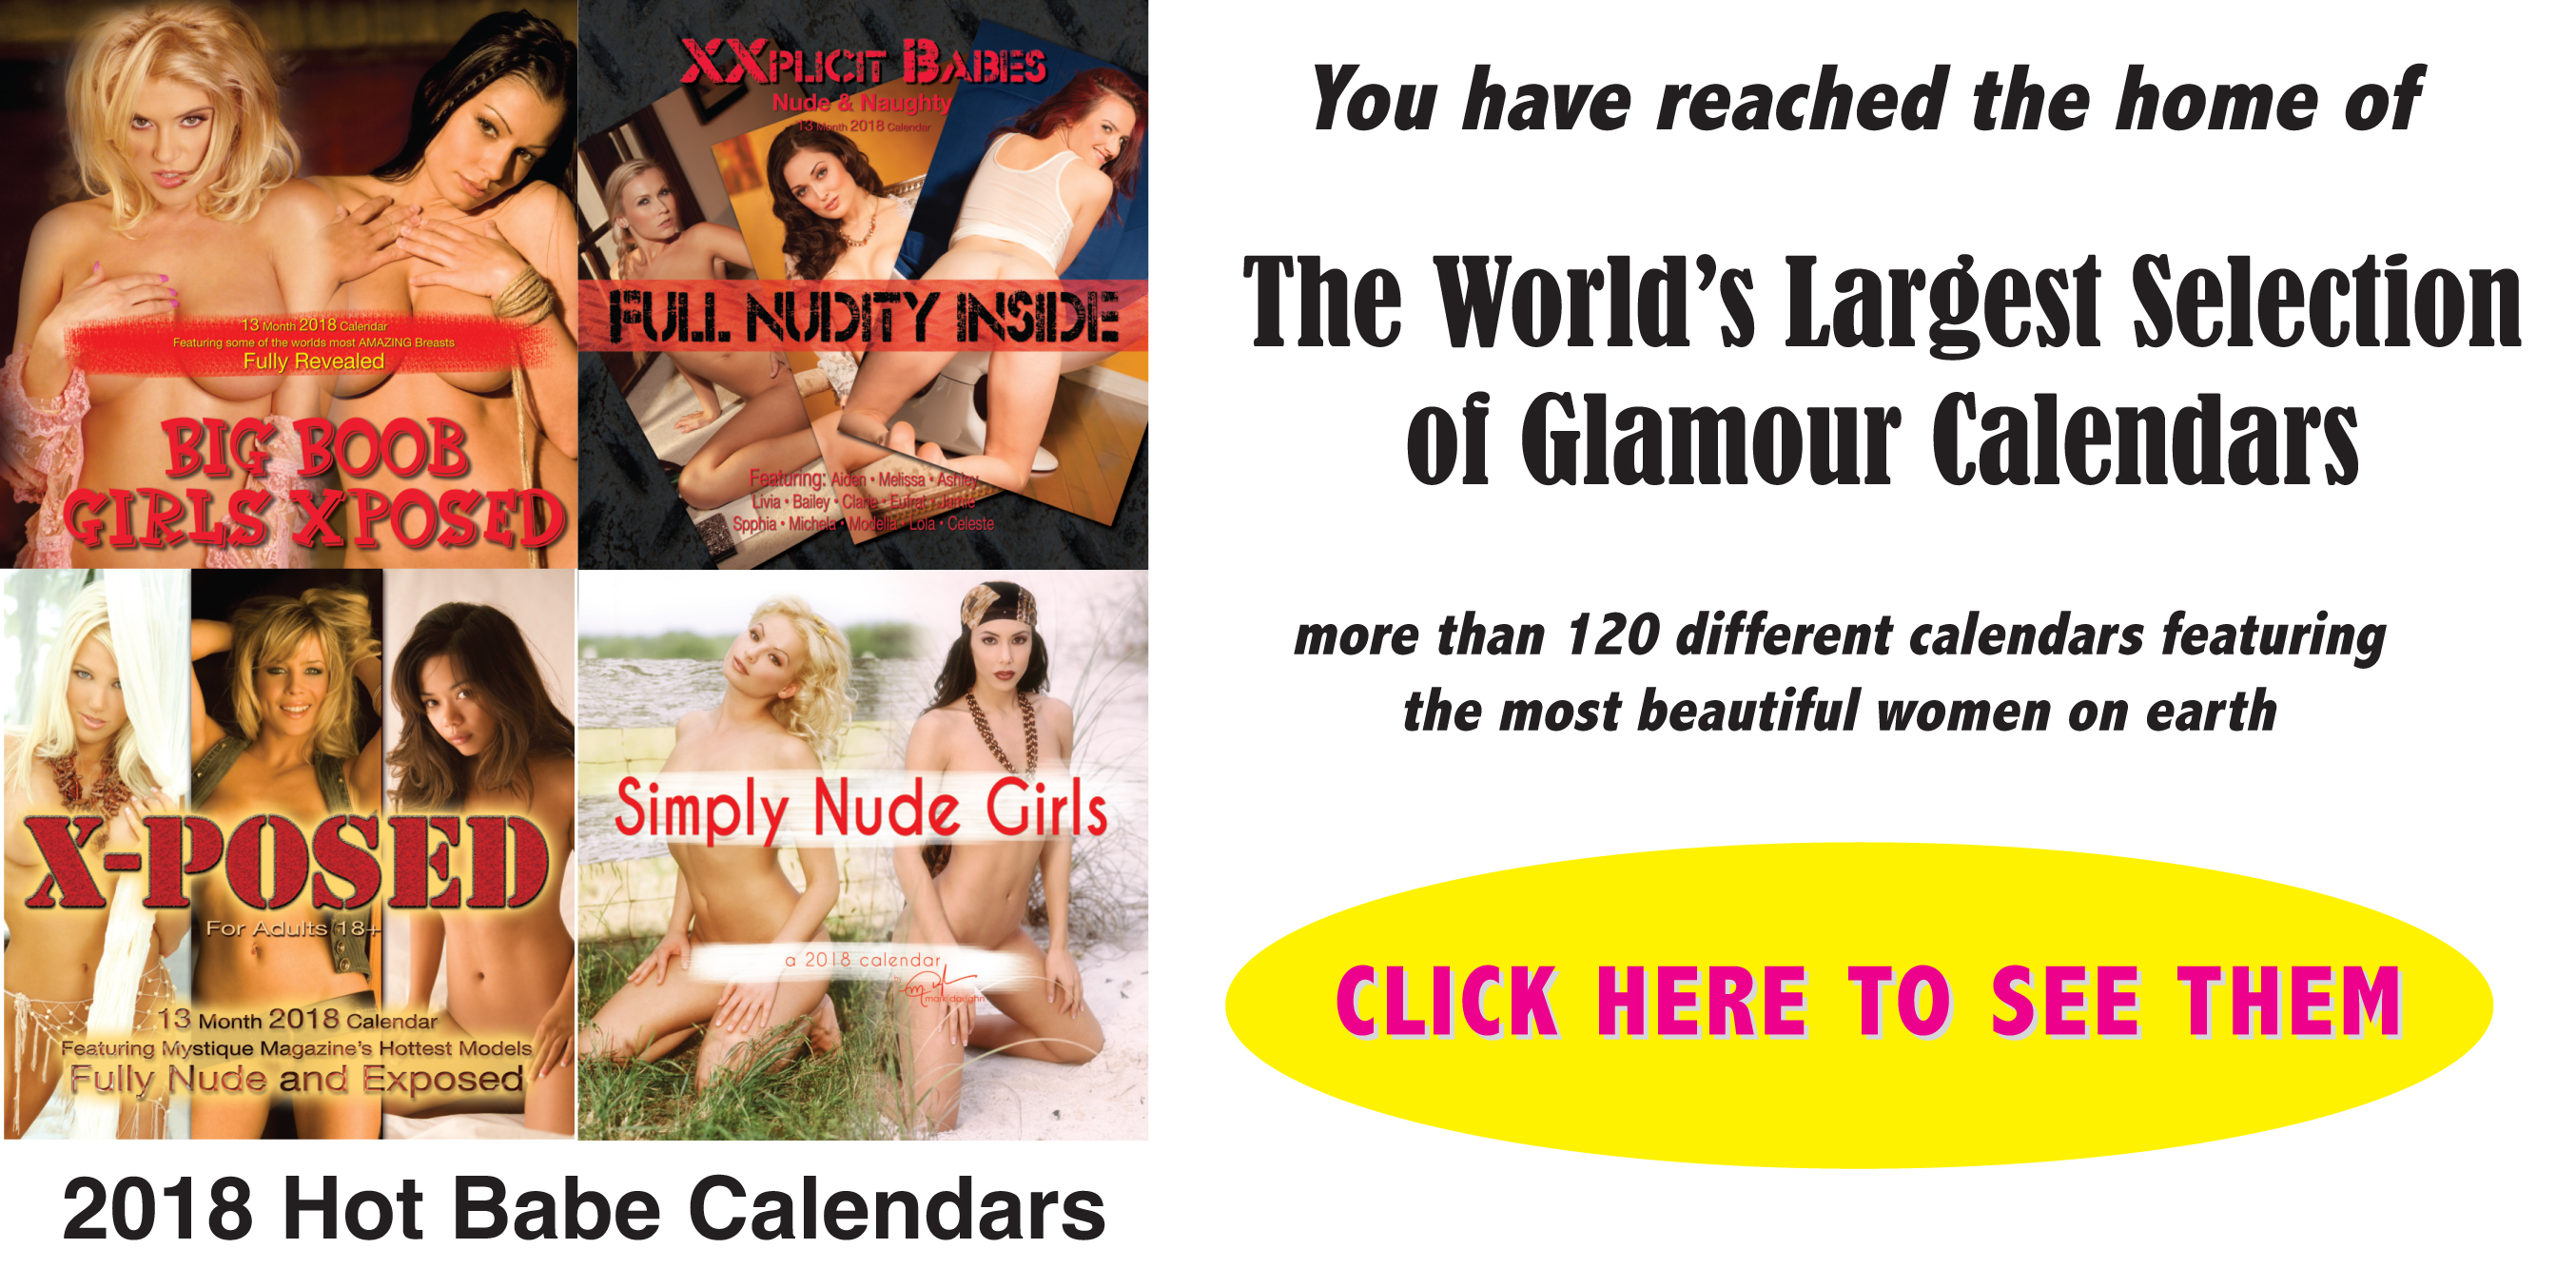 World's Largest Selection of Nude and Non-Nude Glamour Calendars